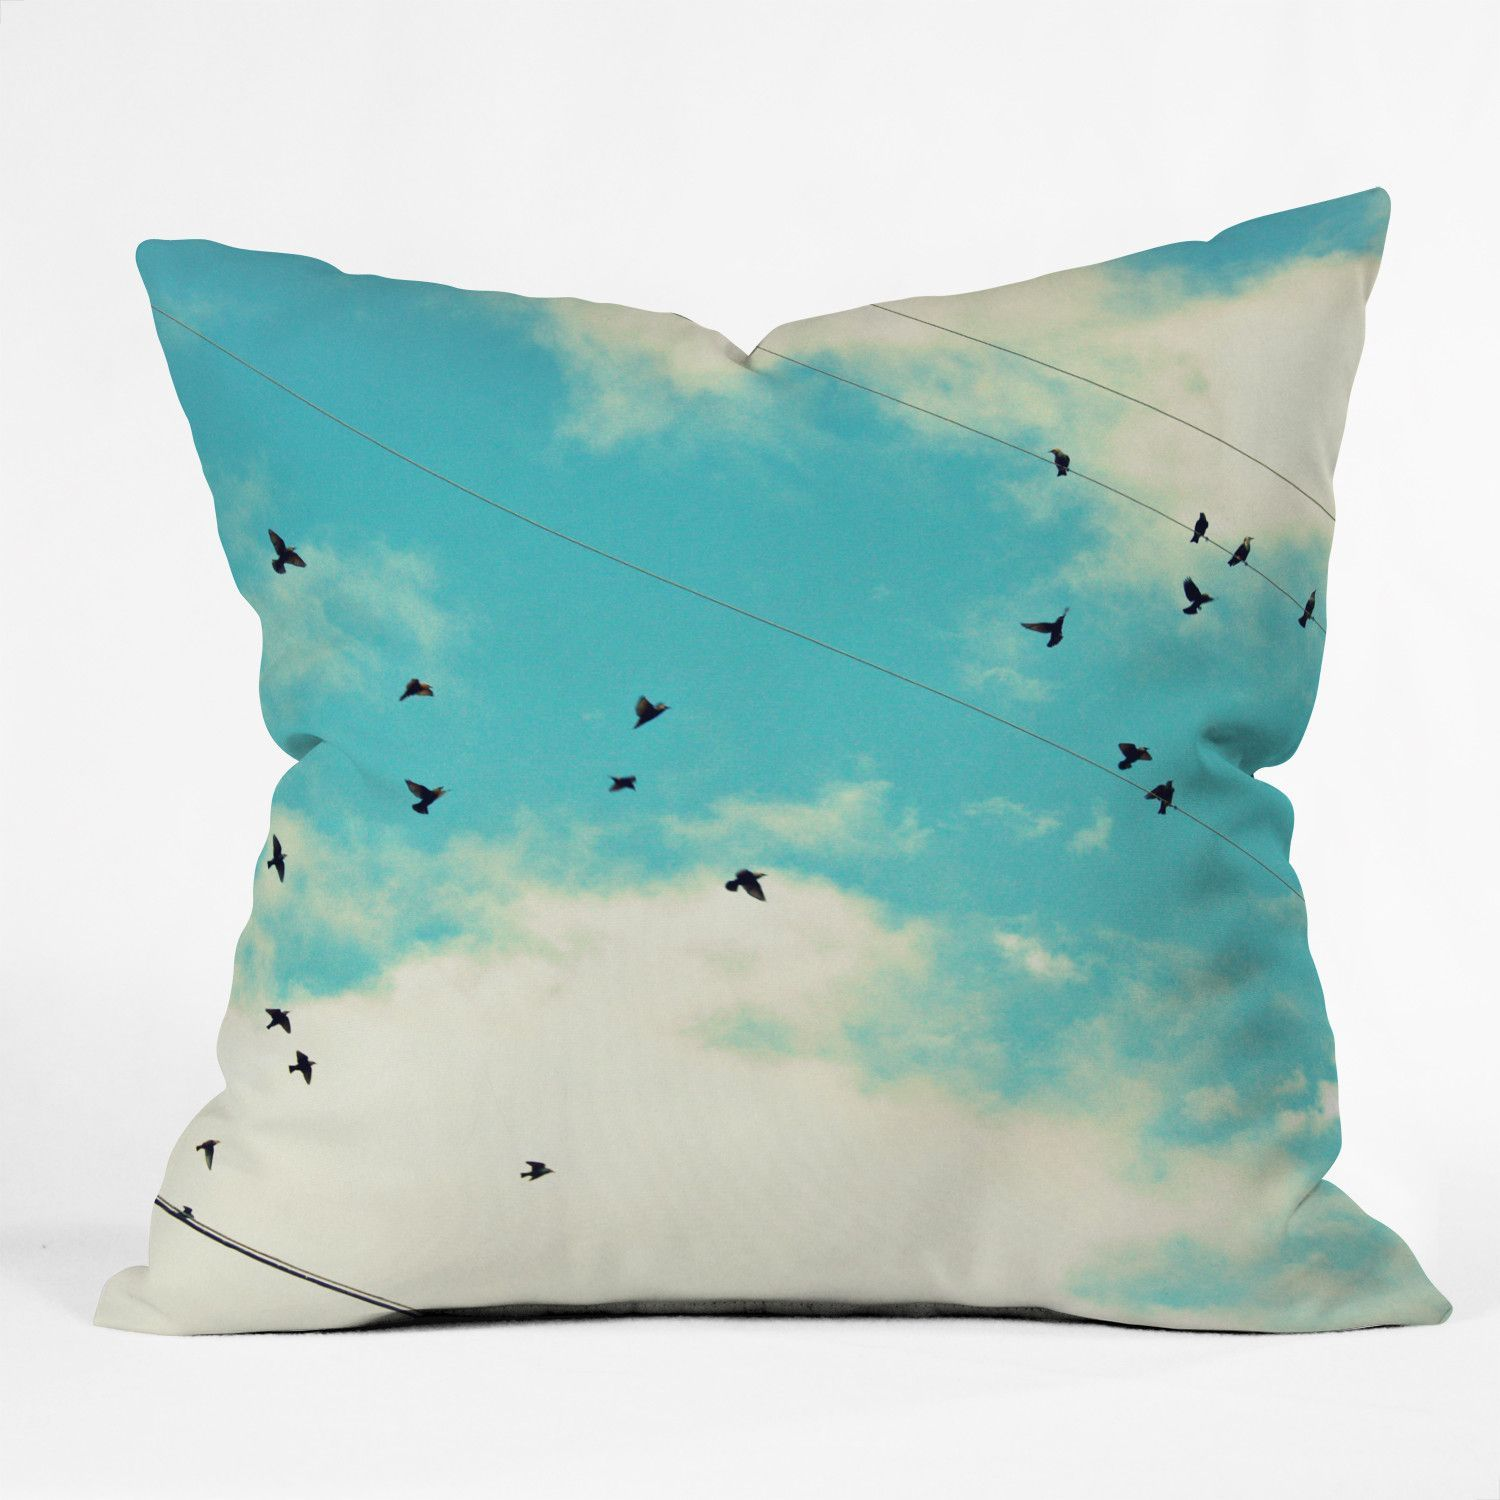 shannon clark blue skies ahead outdoor throw pillow  contemporary  outdoorcushions and pillows  by deny designs. shannon clark indooroutdoor throw pillow  products  pinterest